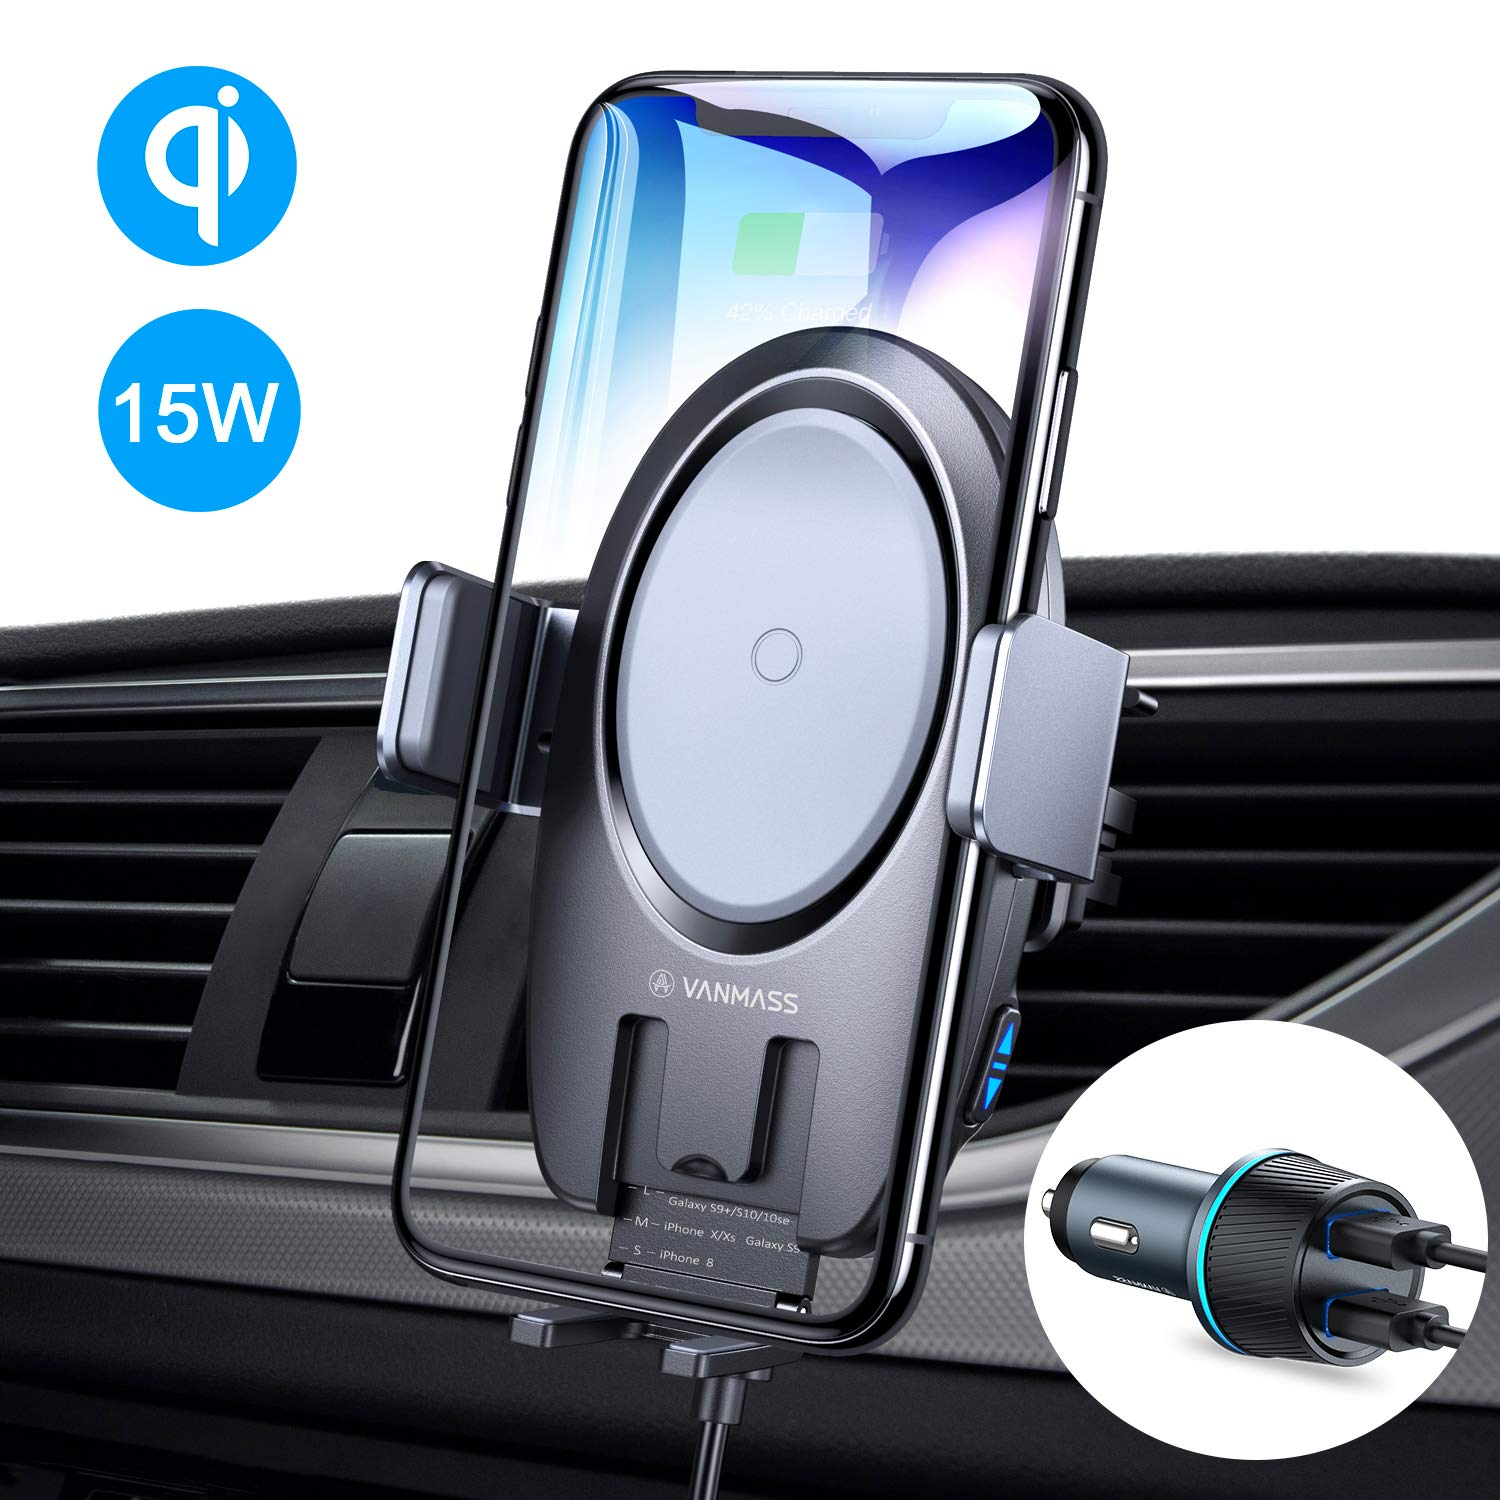 VANMASS Wireless Car Charger, 15W Qi Fast Charging Auto-Clamping Car Mount, Air Vent Phone Holder Compatible with iPhone 11/11 Pro/Pro Max/XS MAX/XS/XR/X/8, Samsung Note 10/S10/S9/S8/S7, Pixel/LG by VANMASS